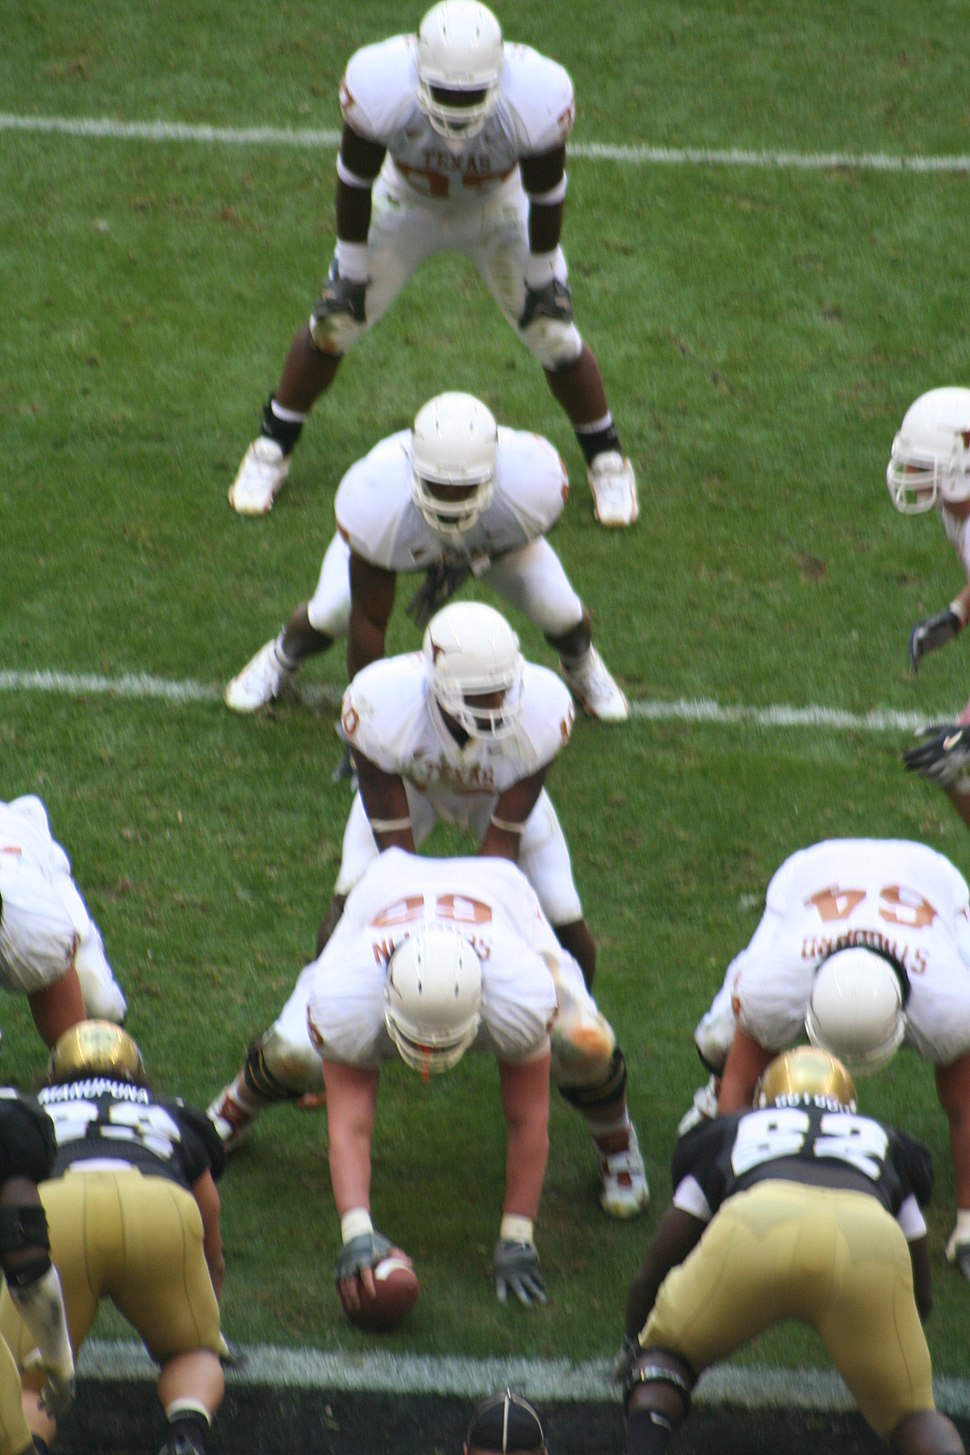 The University of Texas college football team in the I formation